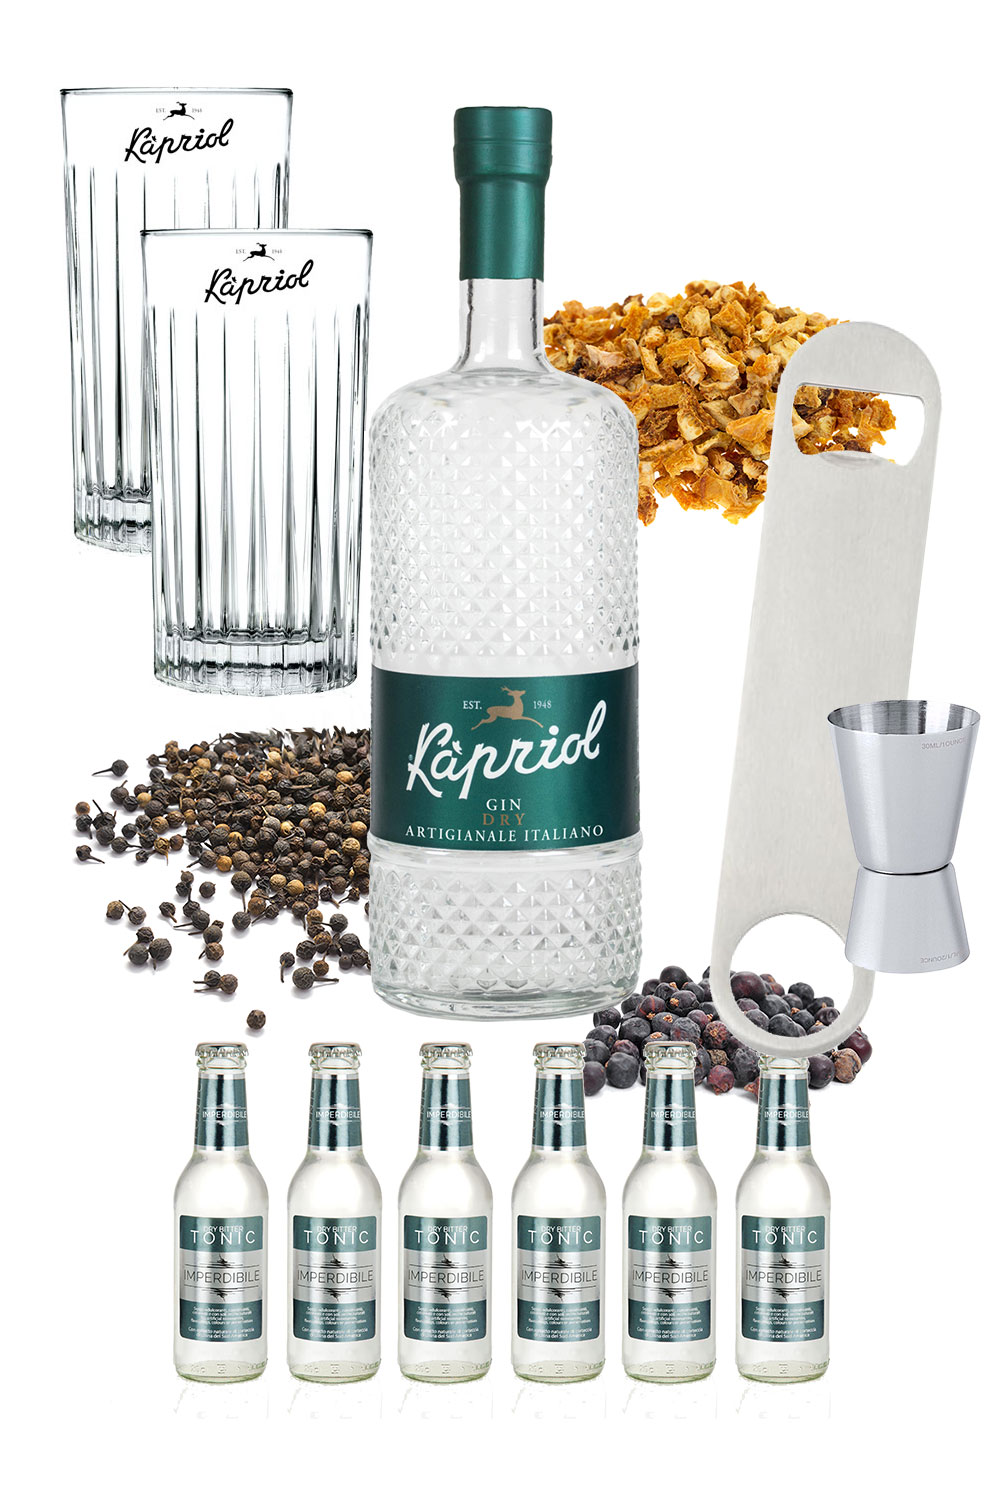 Kapriol Dry – Mission Ginpossible